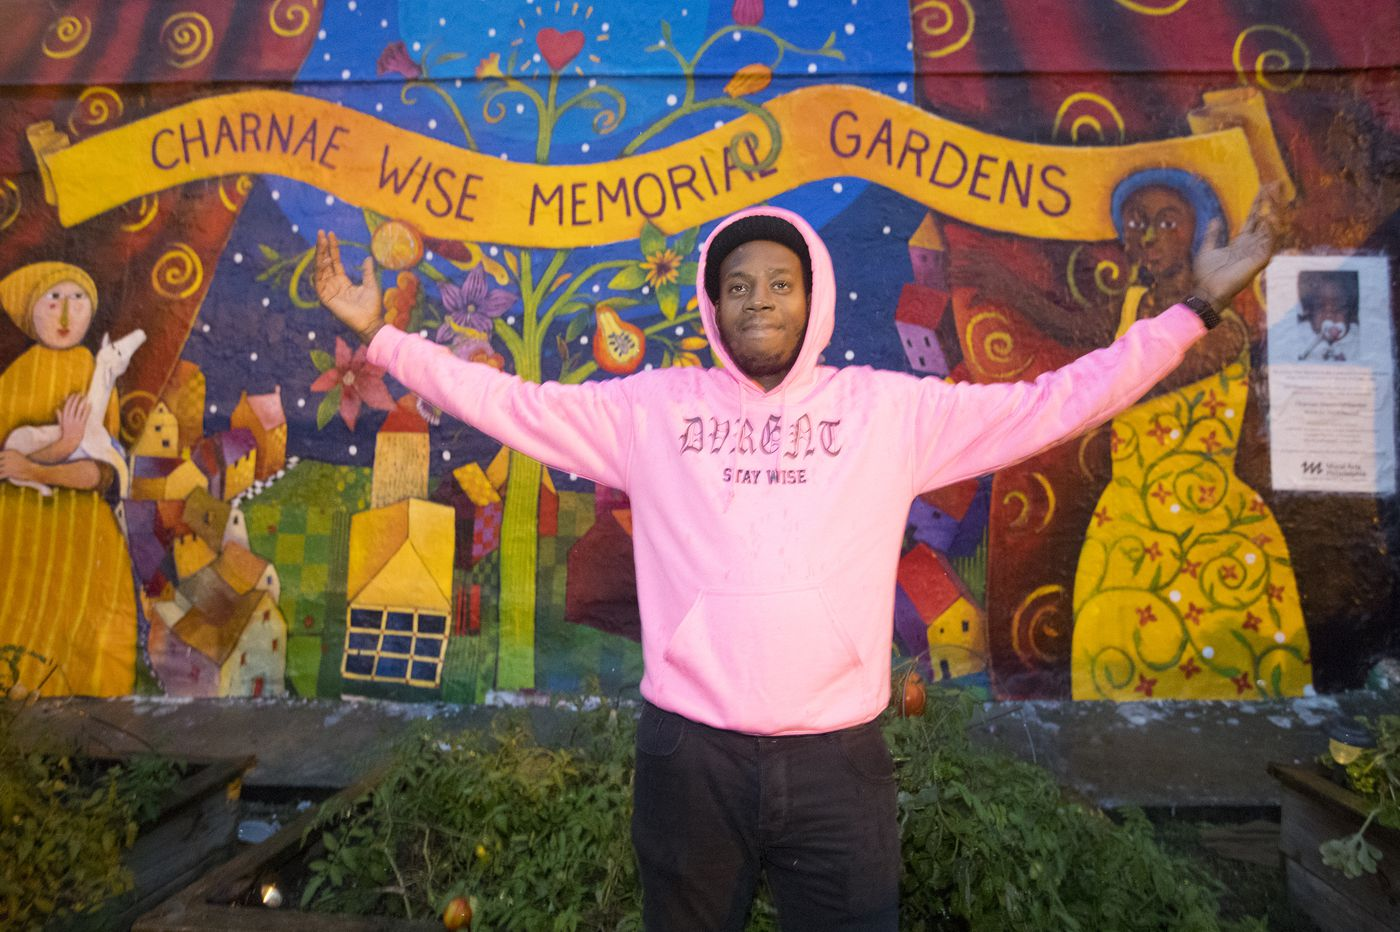 A new mural for a child starved to death in a basement in 1997, and a second chance for her brother | Helen Ubiñas